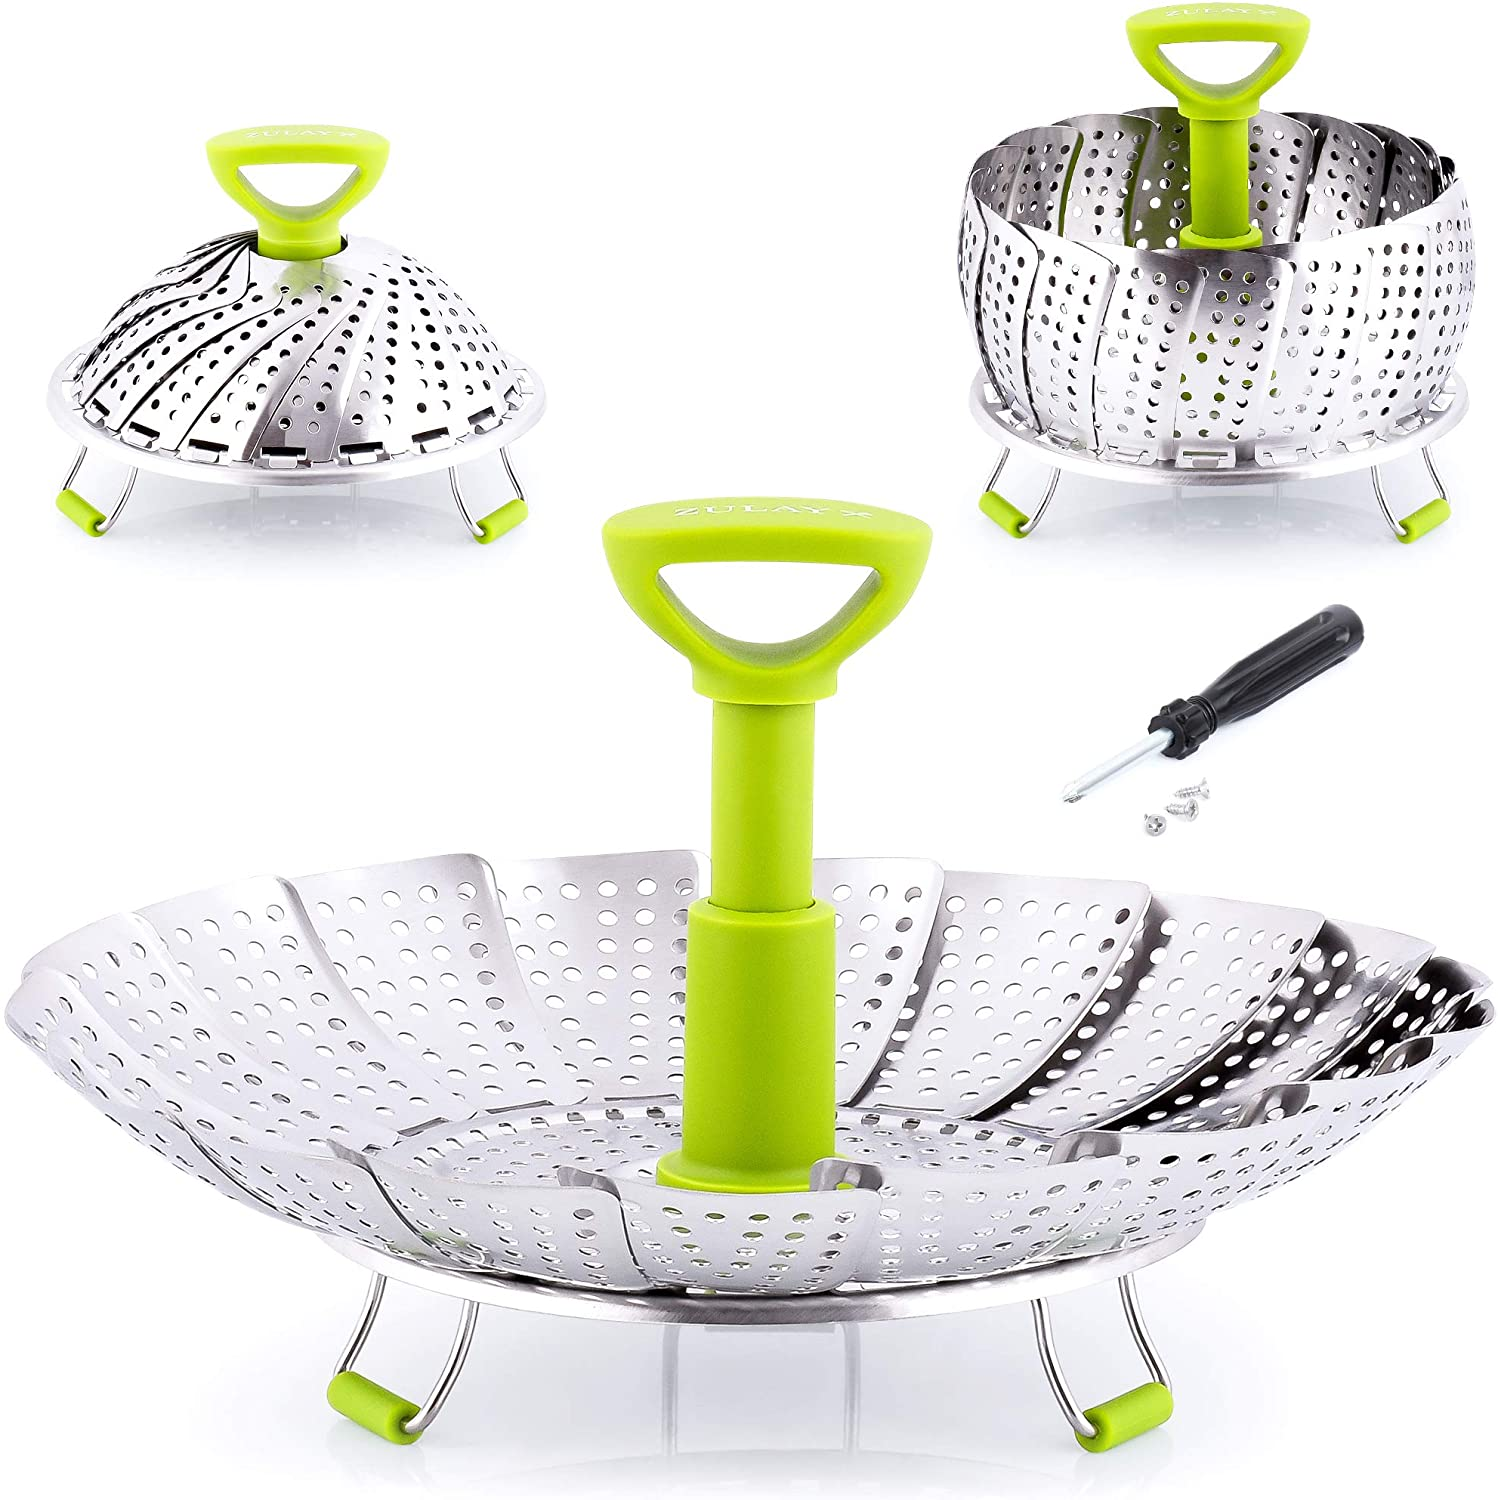 Zulay Adjustable Vegetable Steamer Baskets For Cooking - Foldable Steamer Basket (5.1